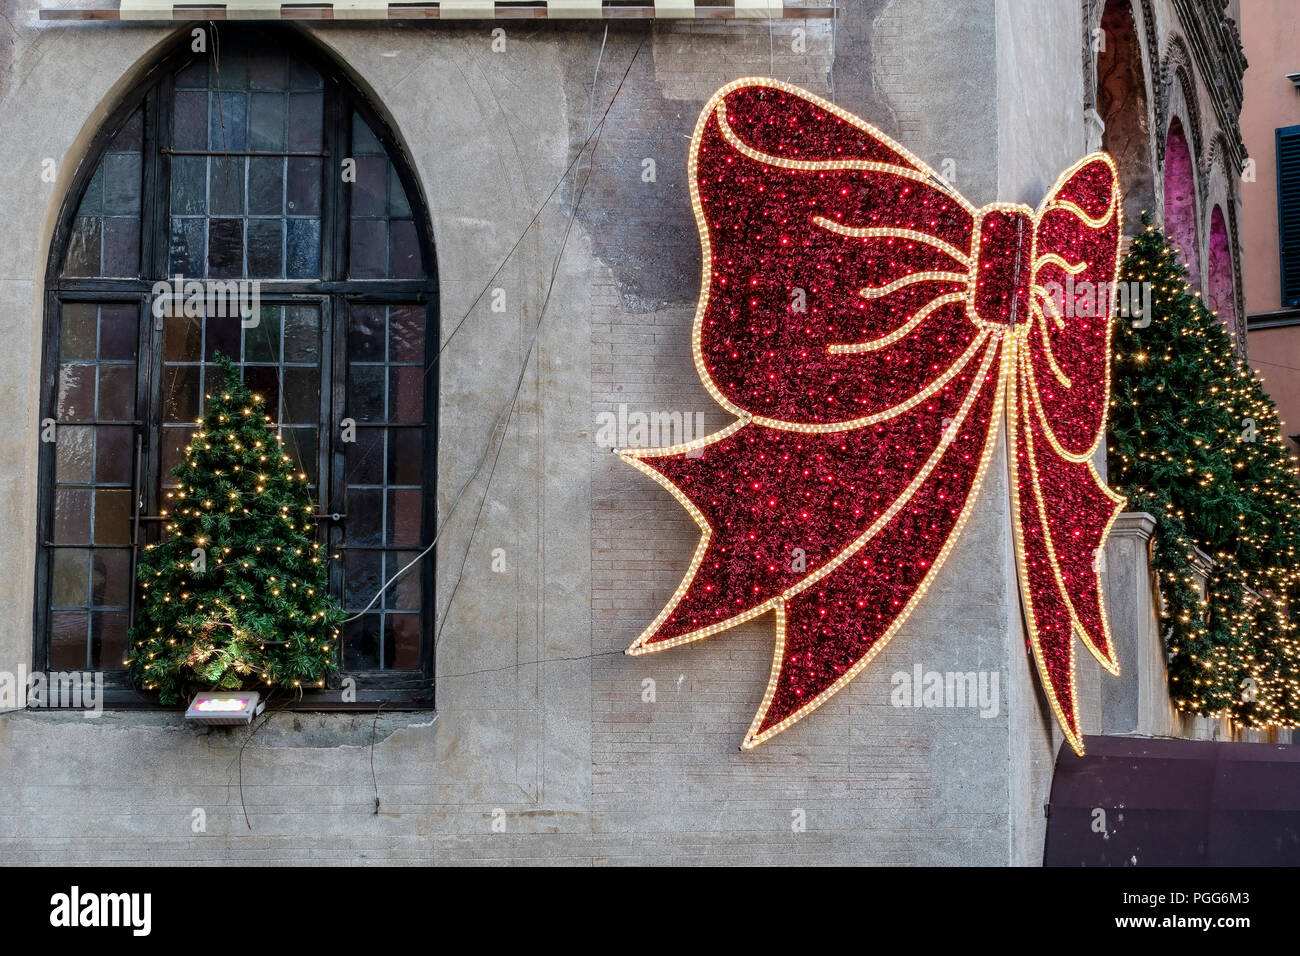 Hostaria dell'Orso at Christmas time with traditional decorations and lights. Big red bow. Ancient 14th century building facade. Rome, Italy, Europe. Stock Photo